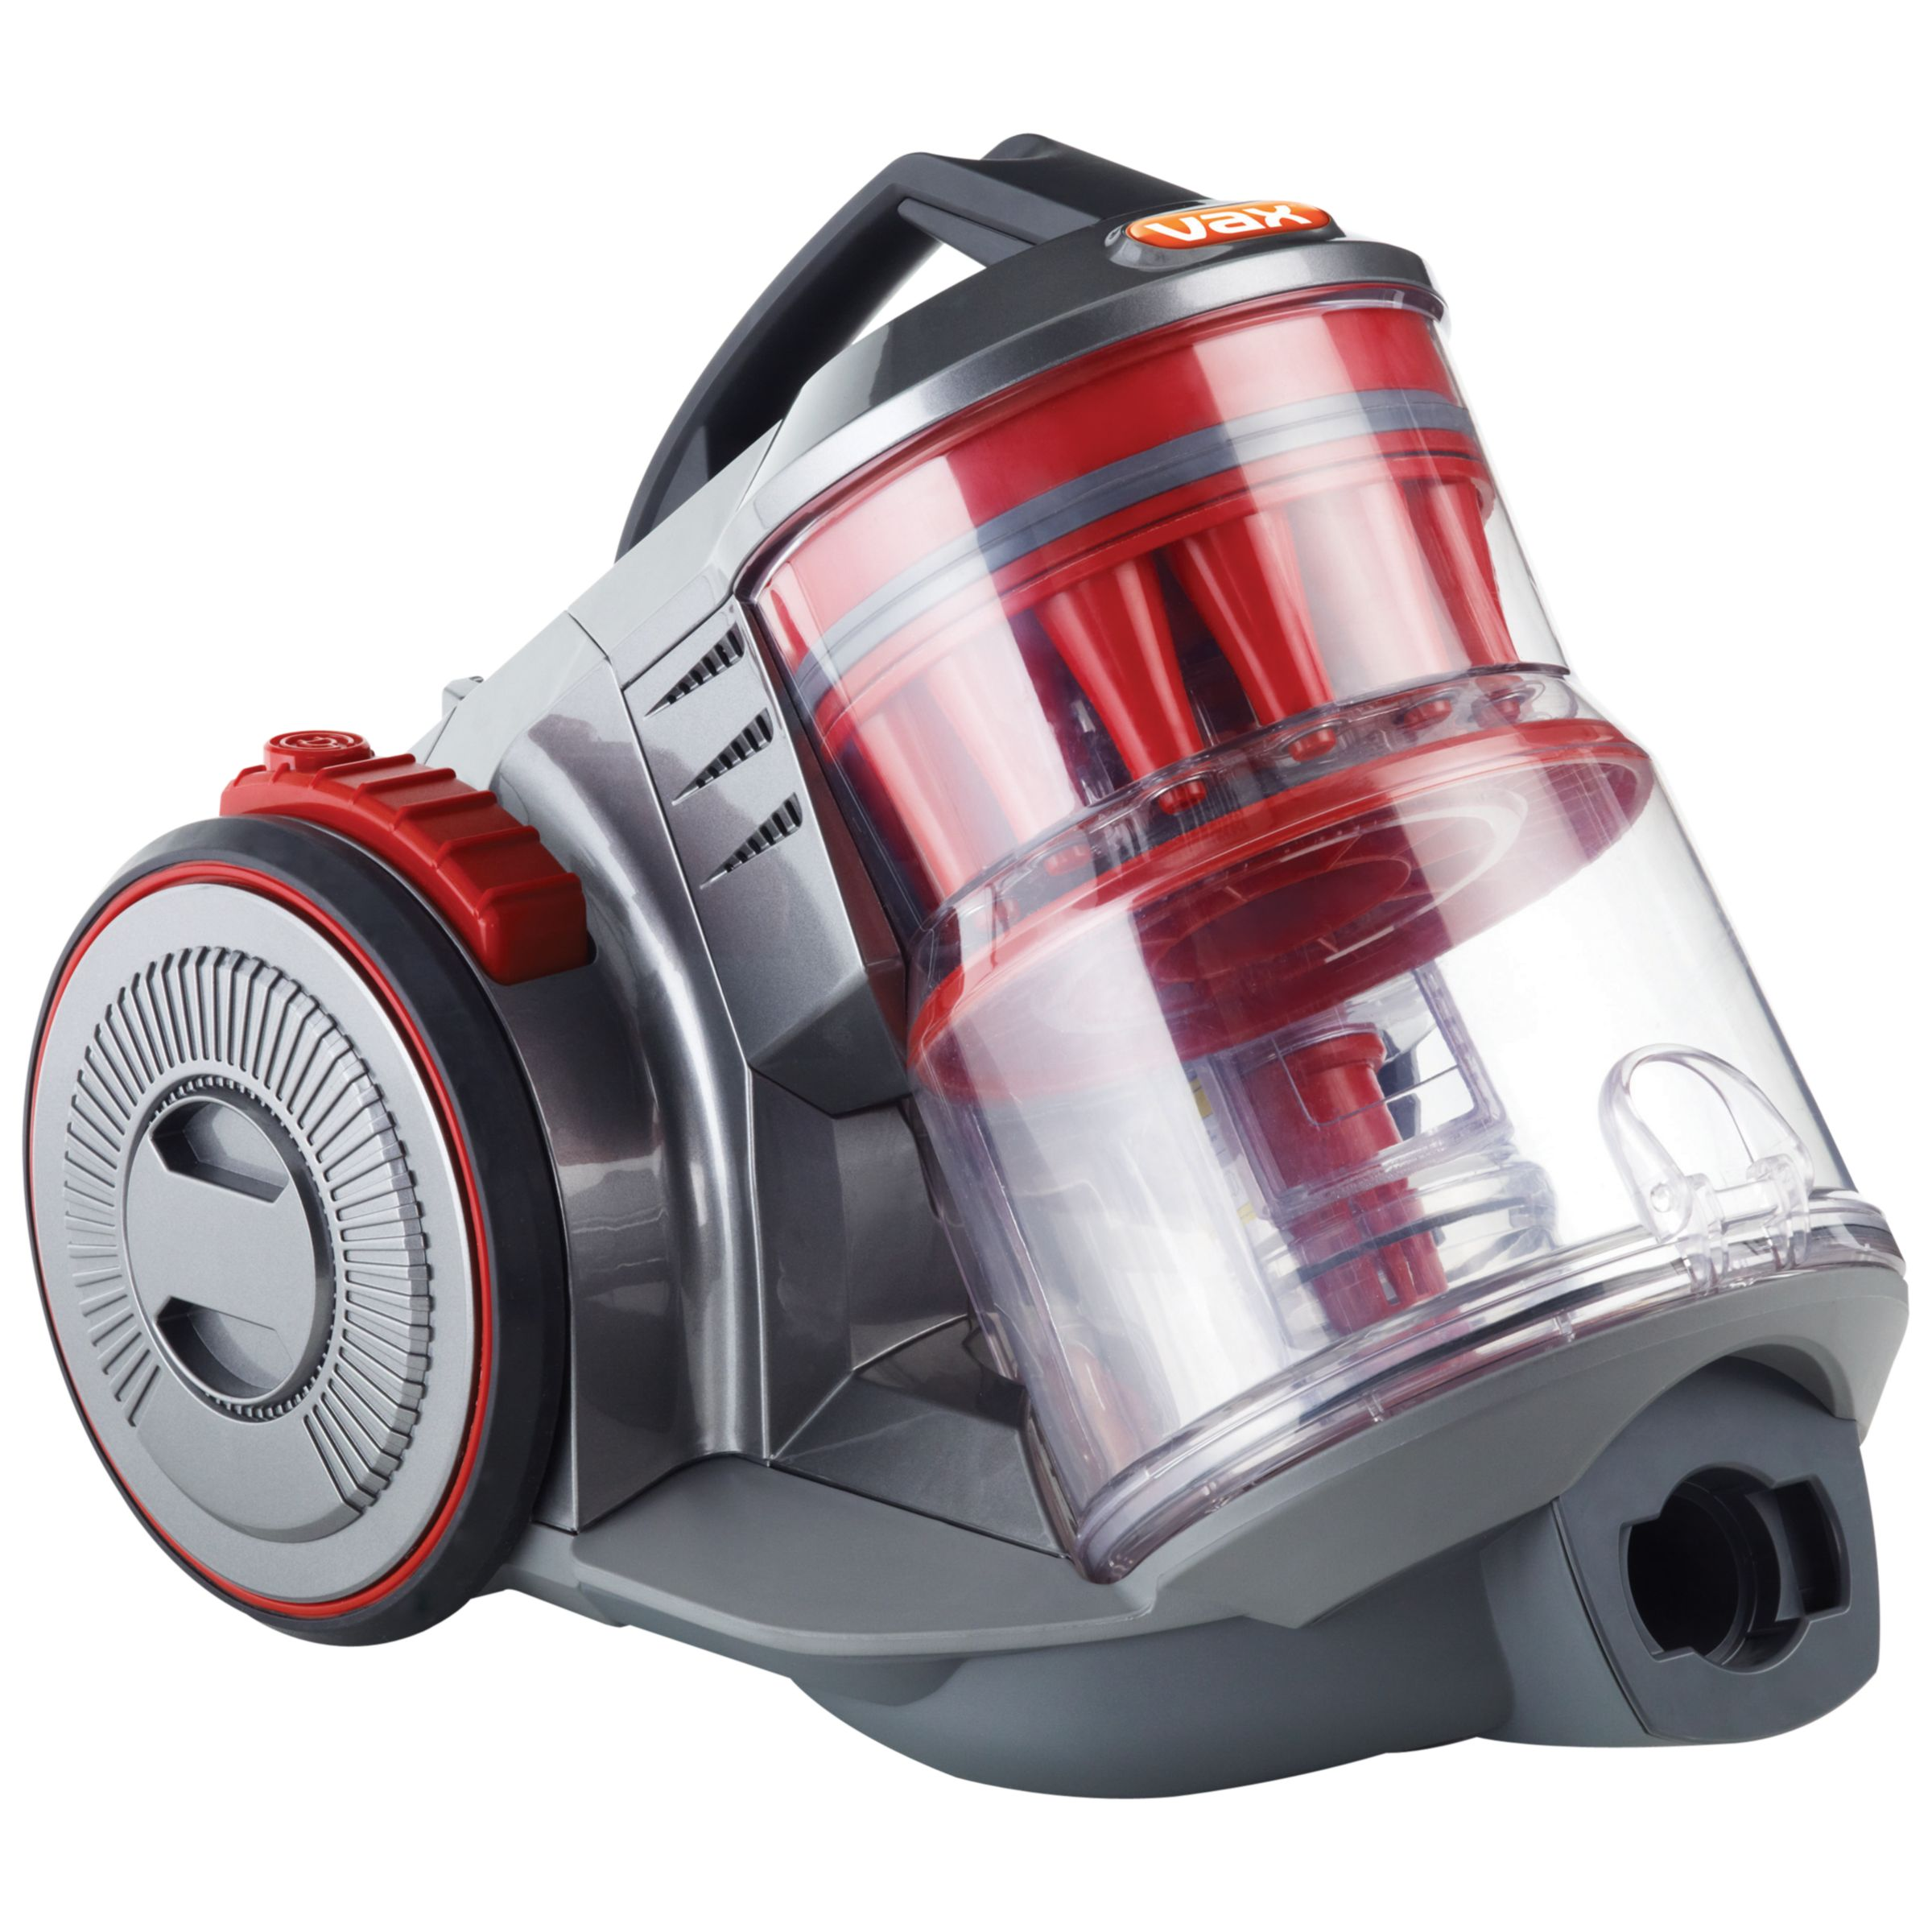 Vax C89-MA-T Air Total Home Vacuum Cleaner